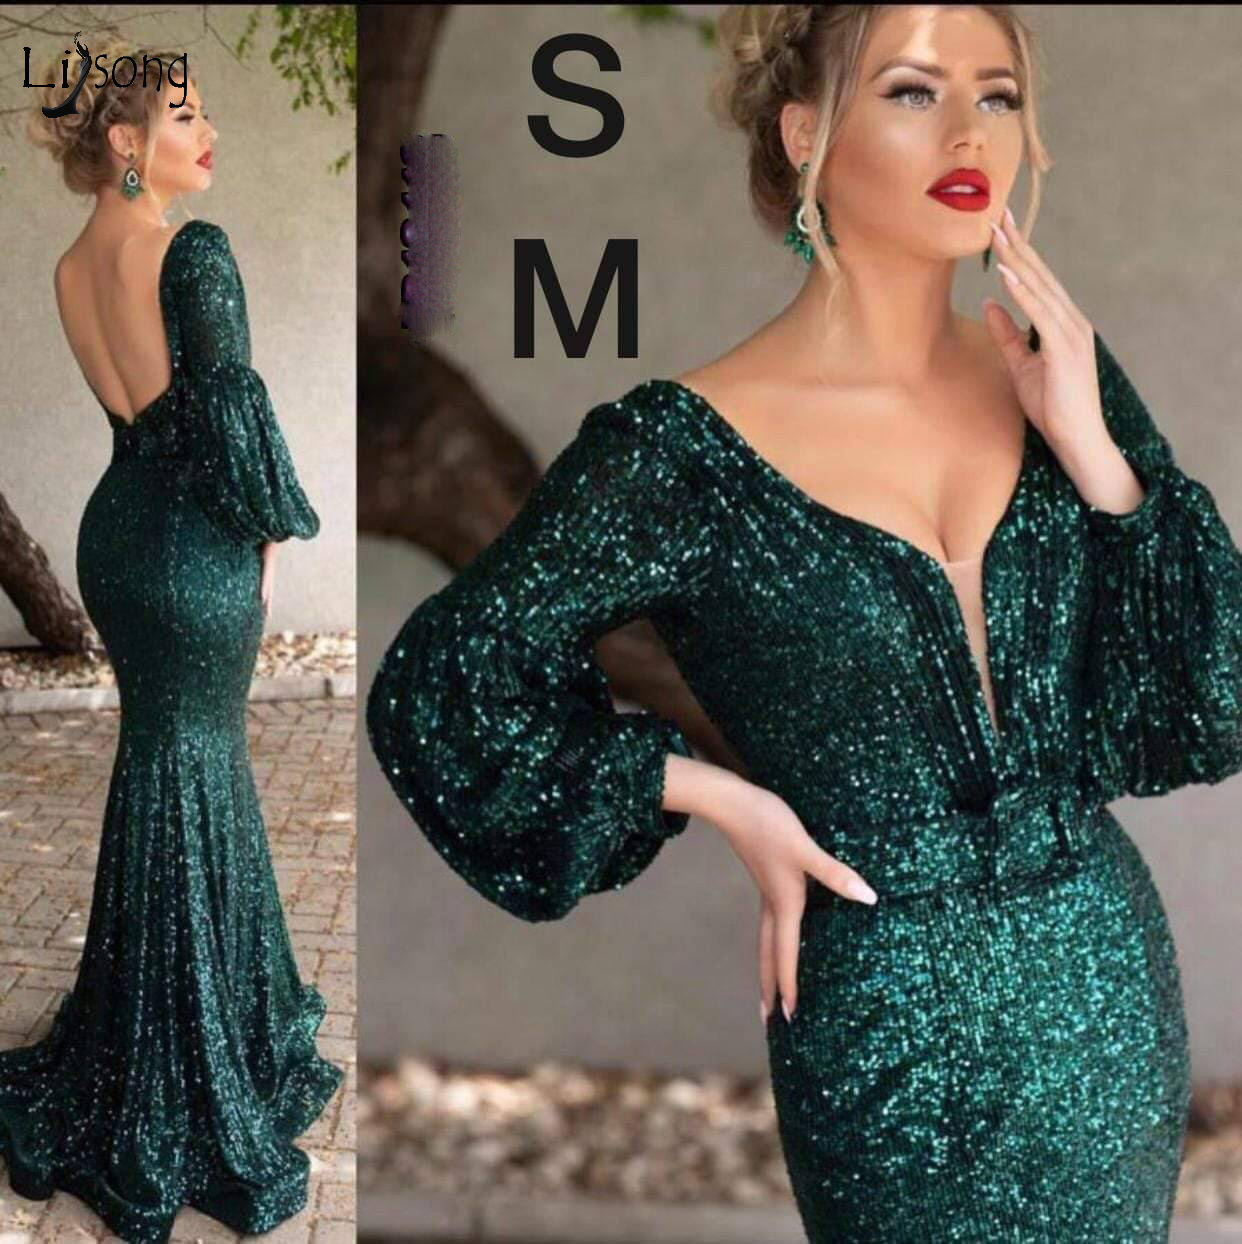 Sexy Sparkle Emerald Green Sequined Mermaid Prom Dresses Puff Full Sleeves Backless V- Neck Sexy Formal Party Dress Prom Gowns